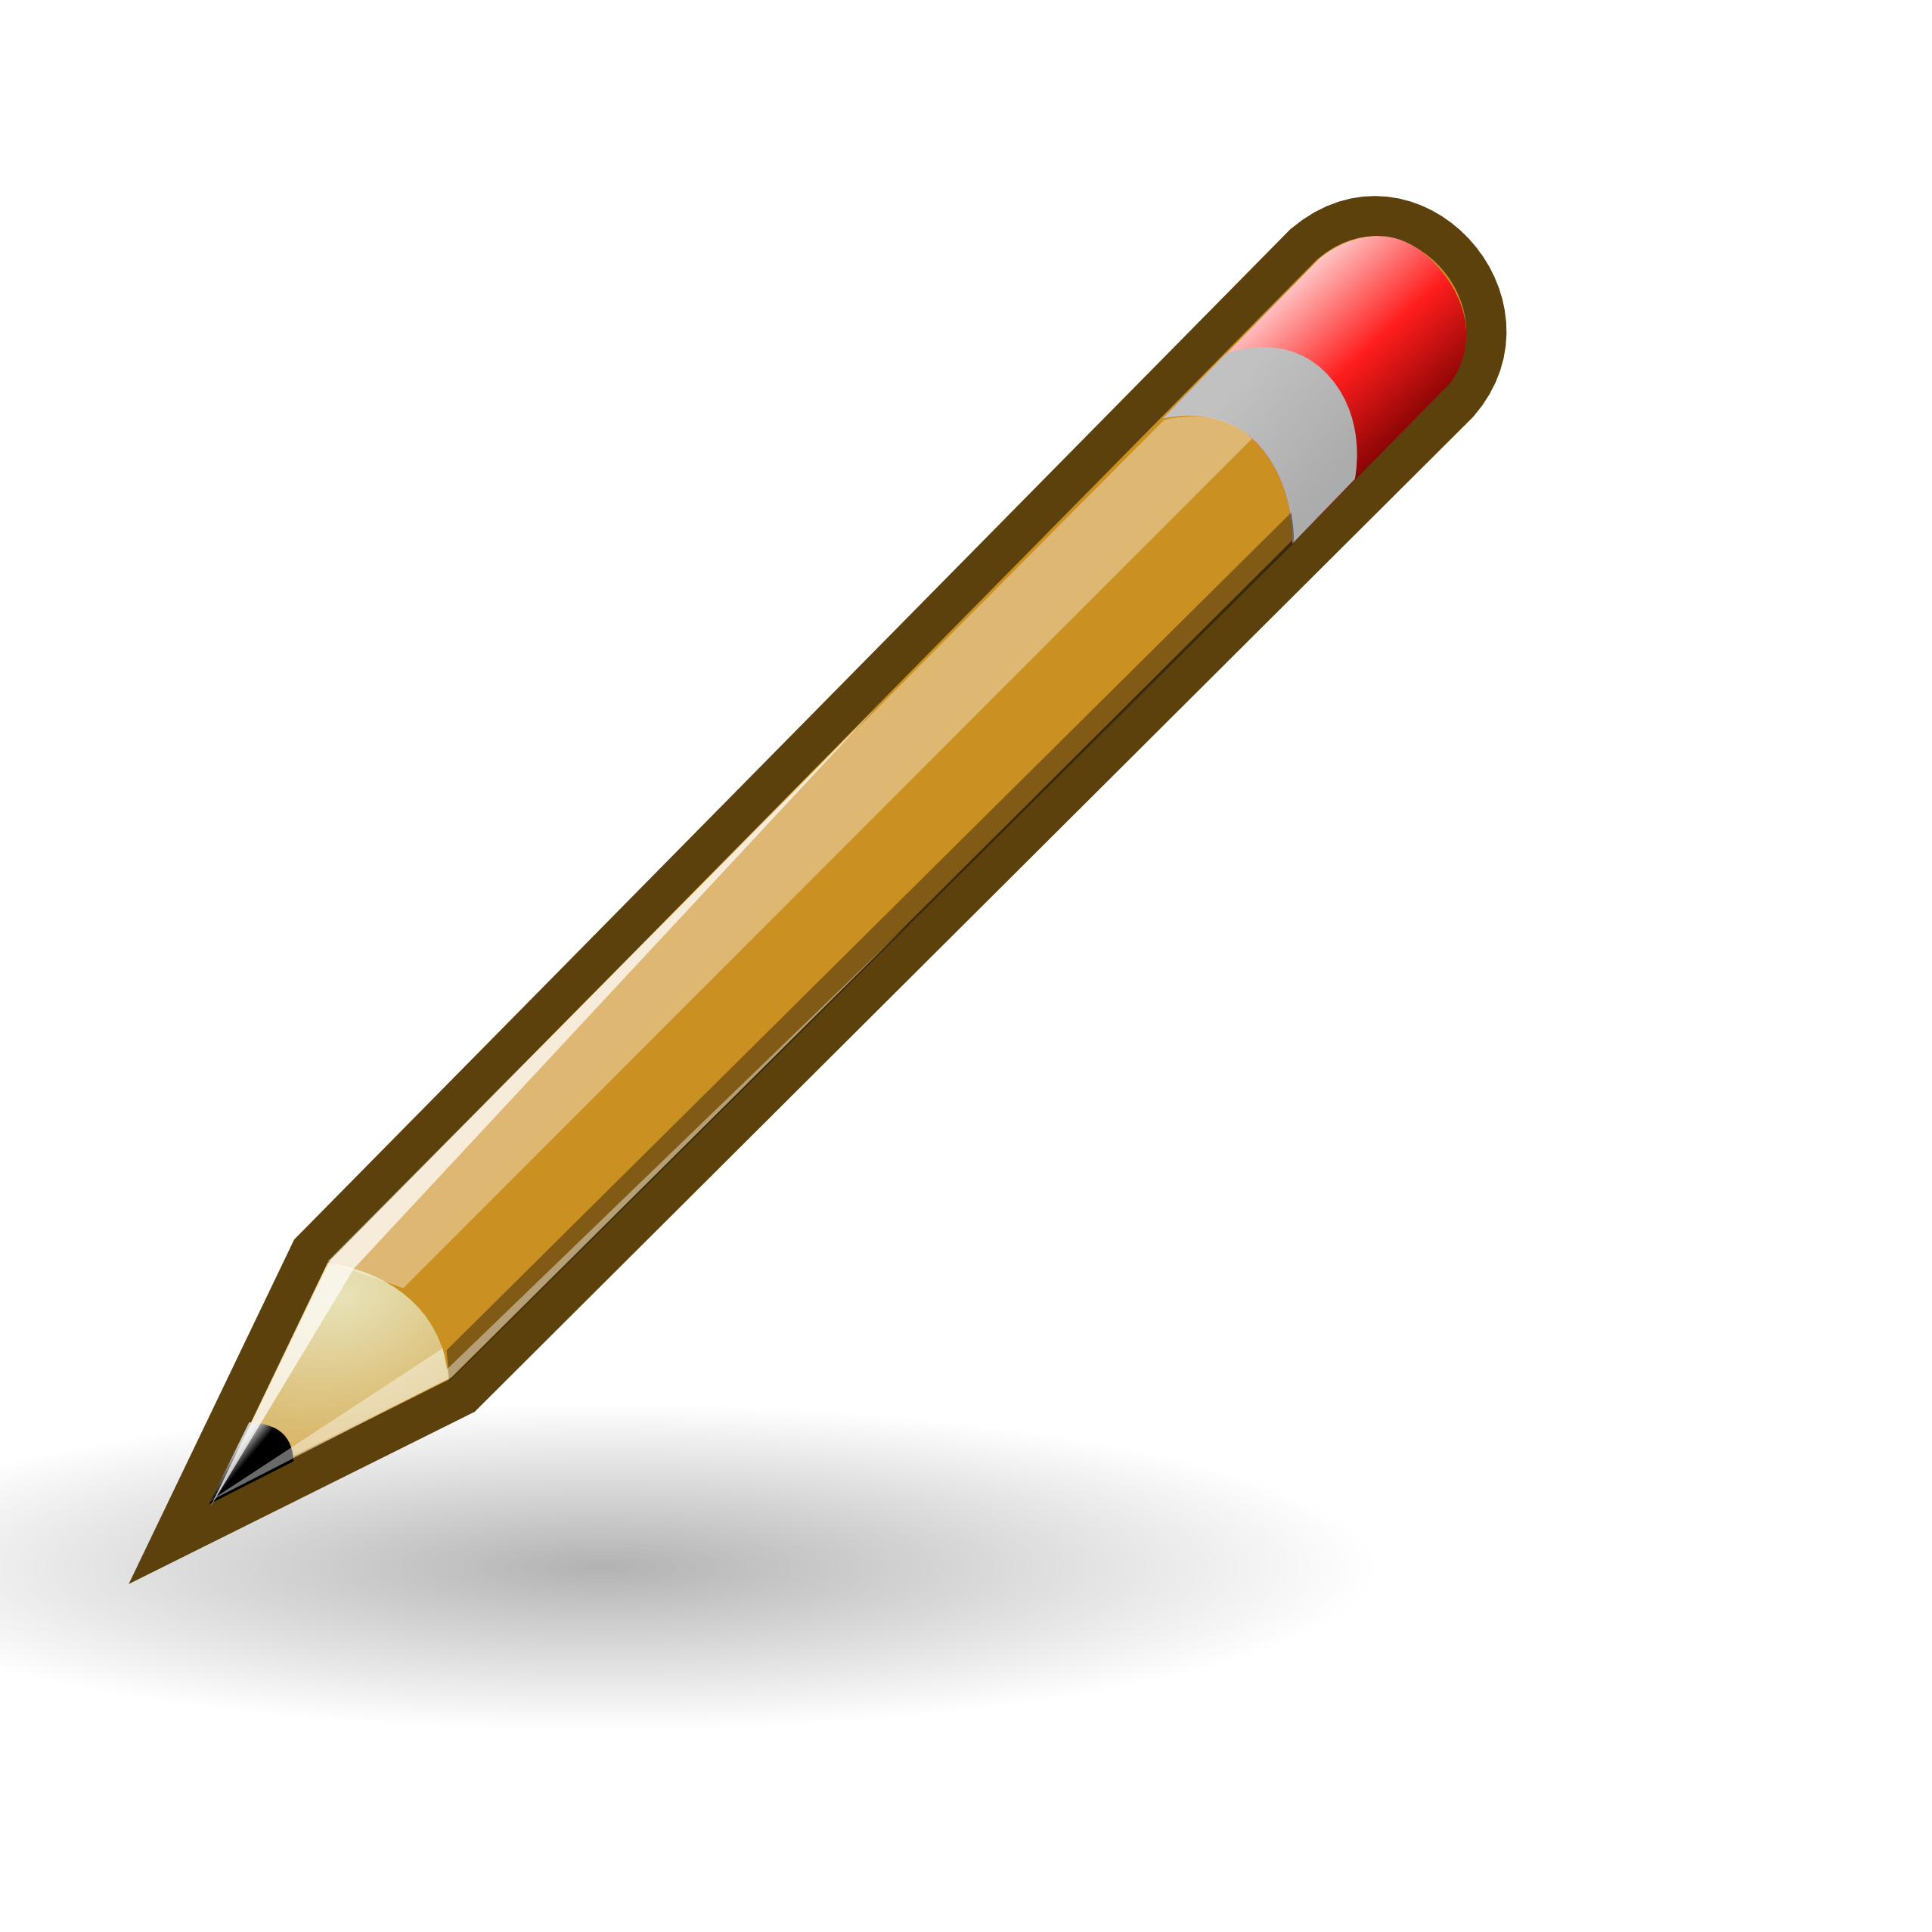 Pencil and book clipart free images.